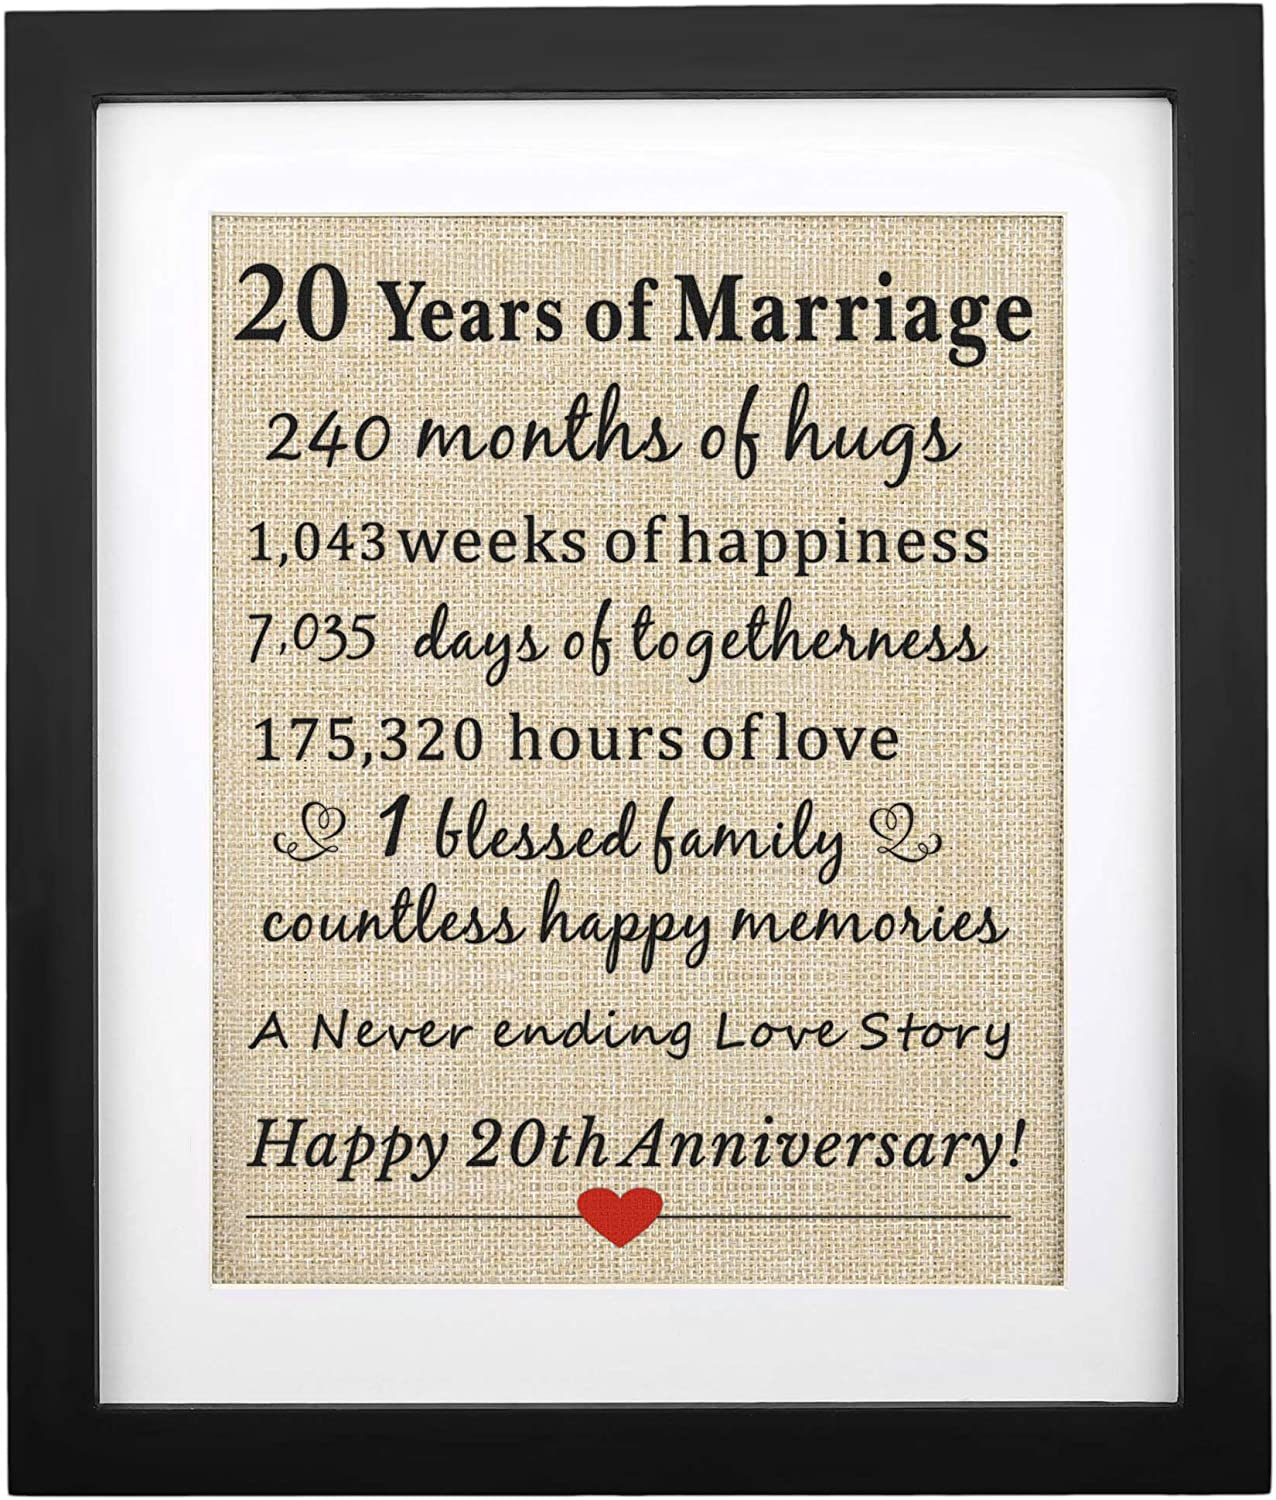 Amazon Com Corfara Framed 20 Years Of Marriage Burlap Print Gifts For 20th Anniversary For Him Her 20th Wedding Anniversary Gift For Husband Wife Posters Prints